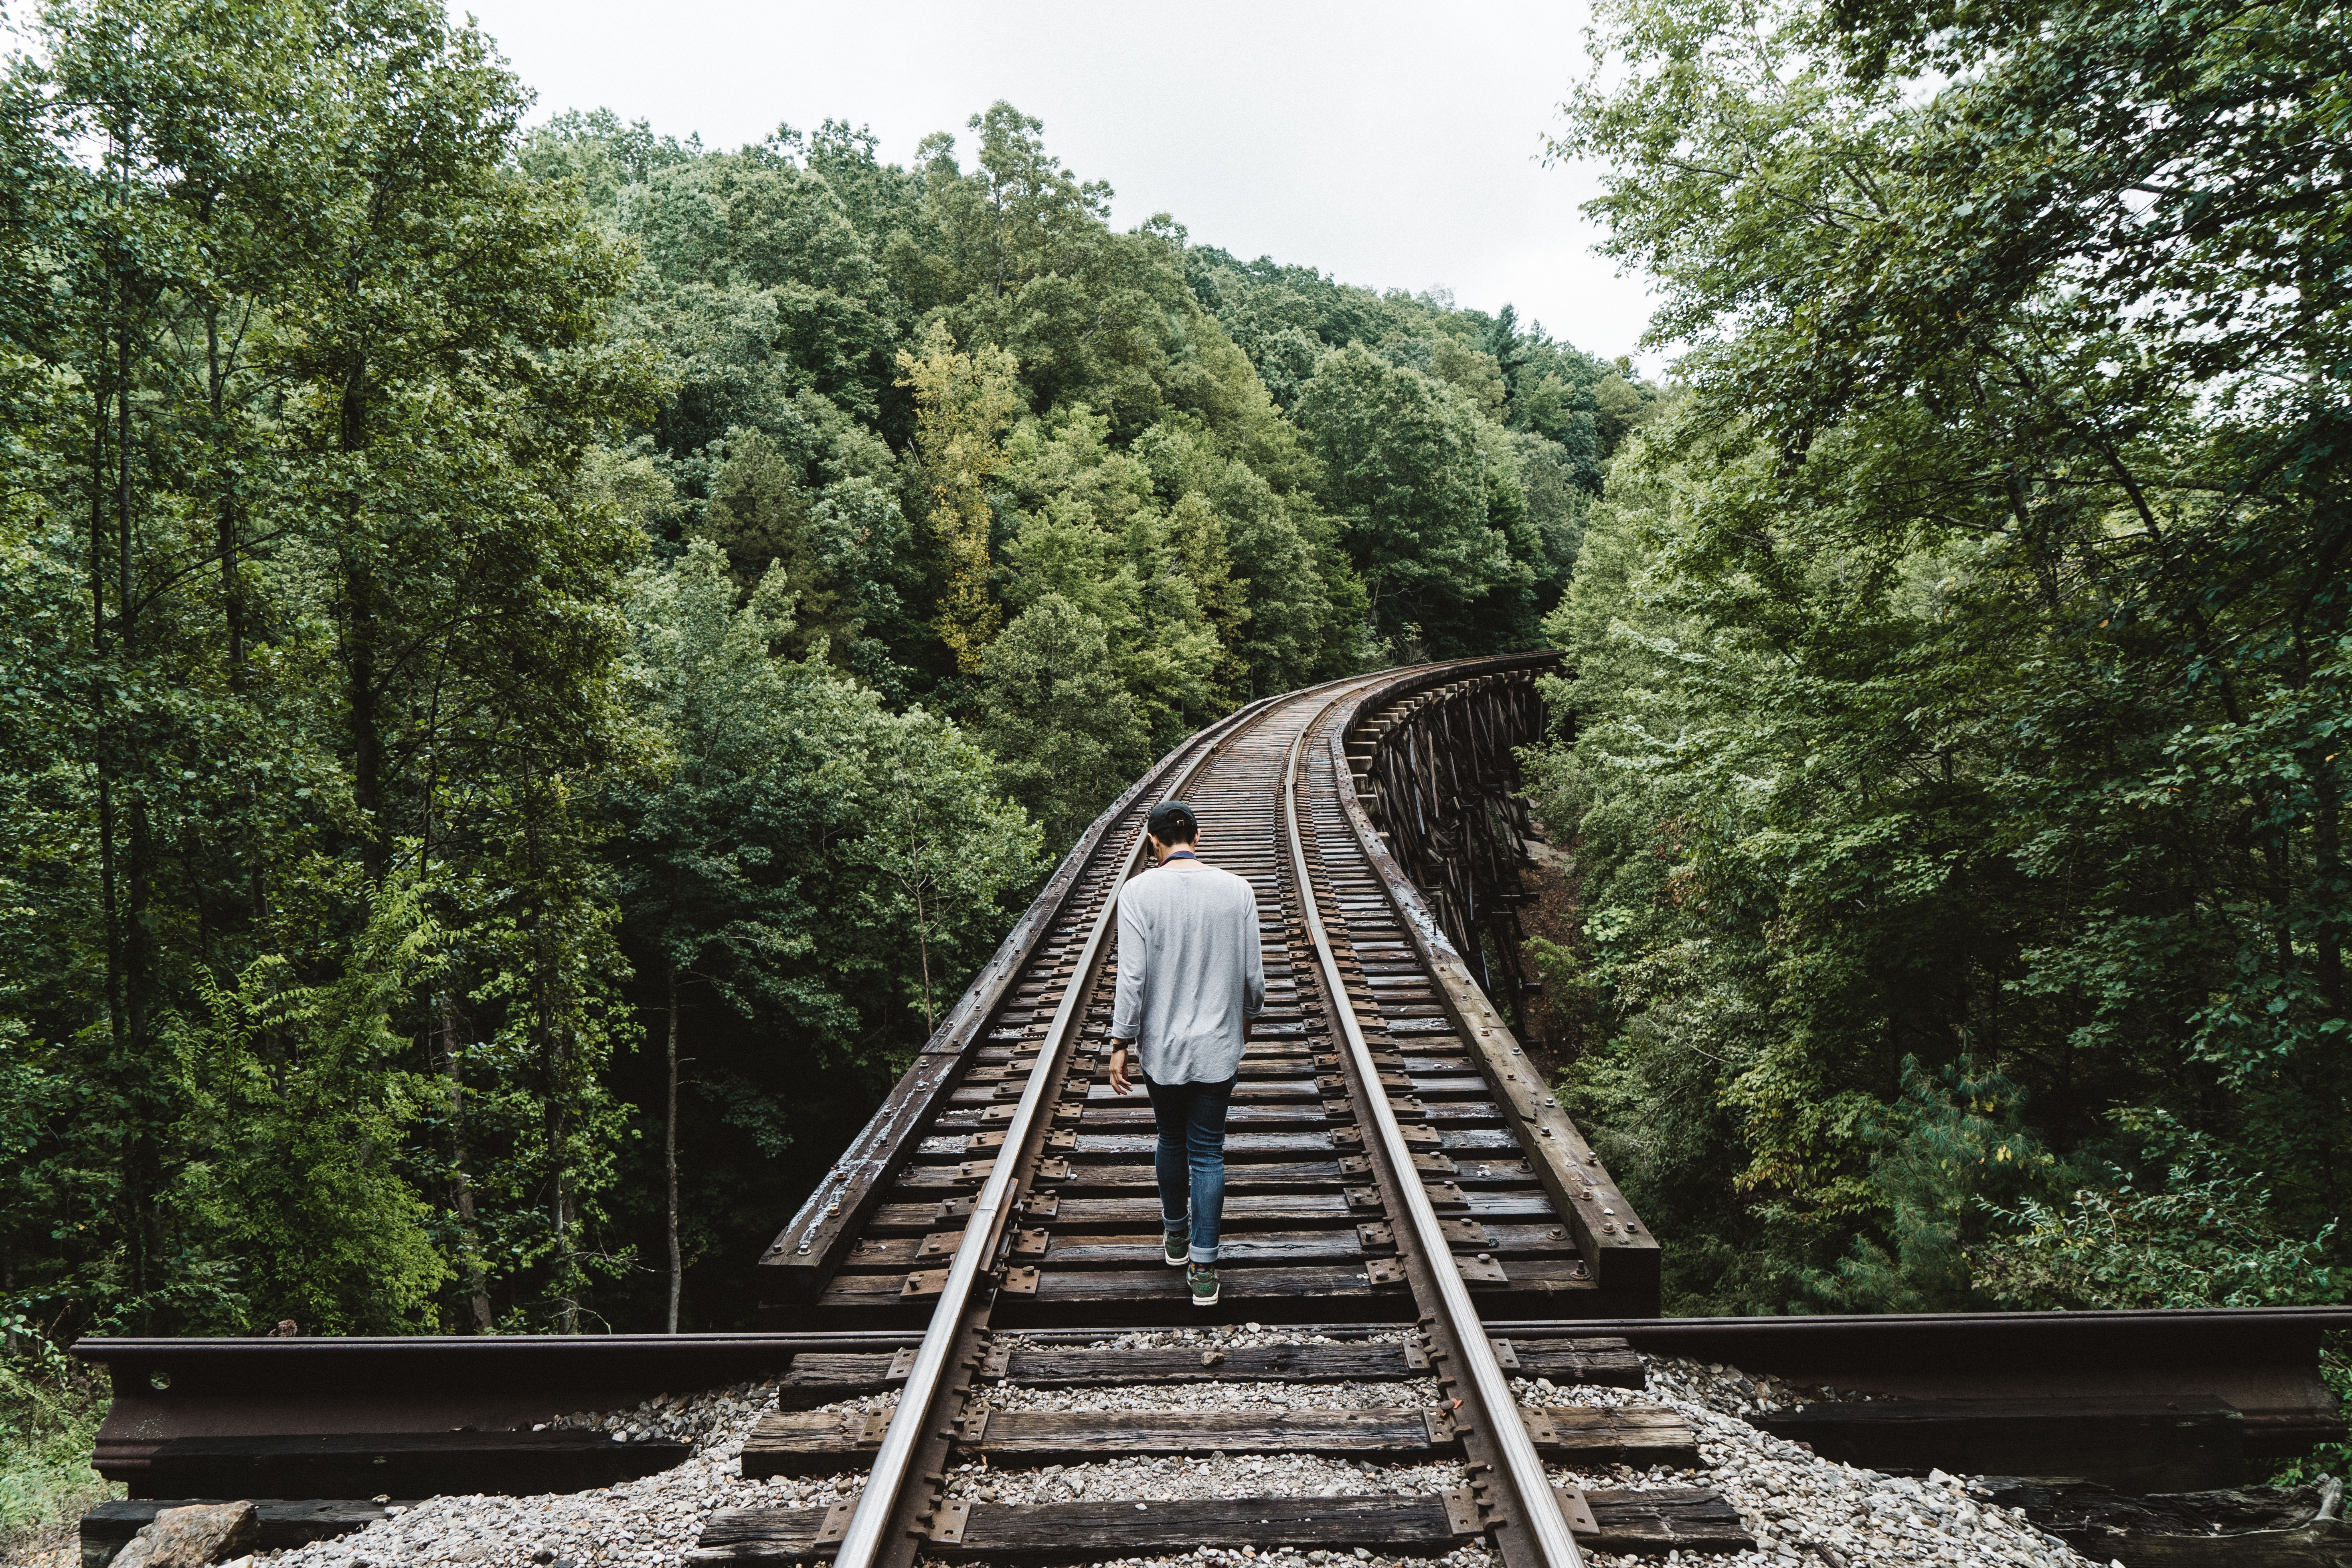 man walking on train tracks in middle of forest